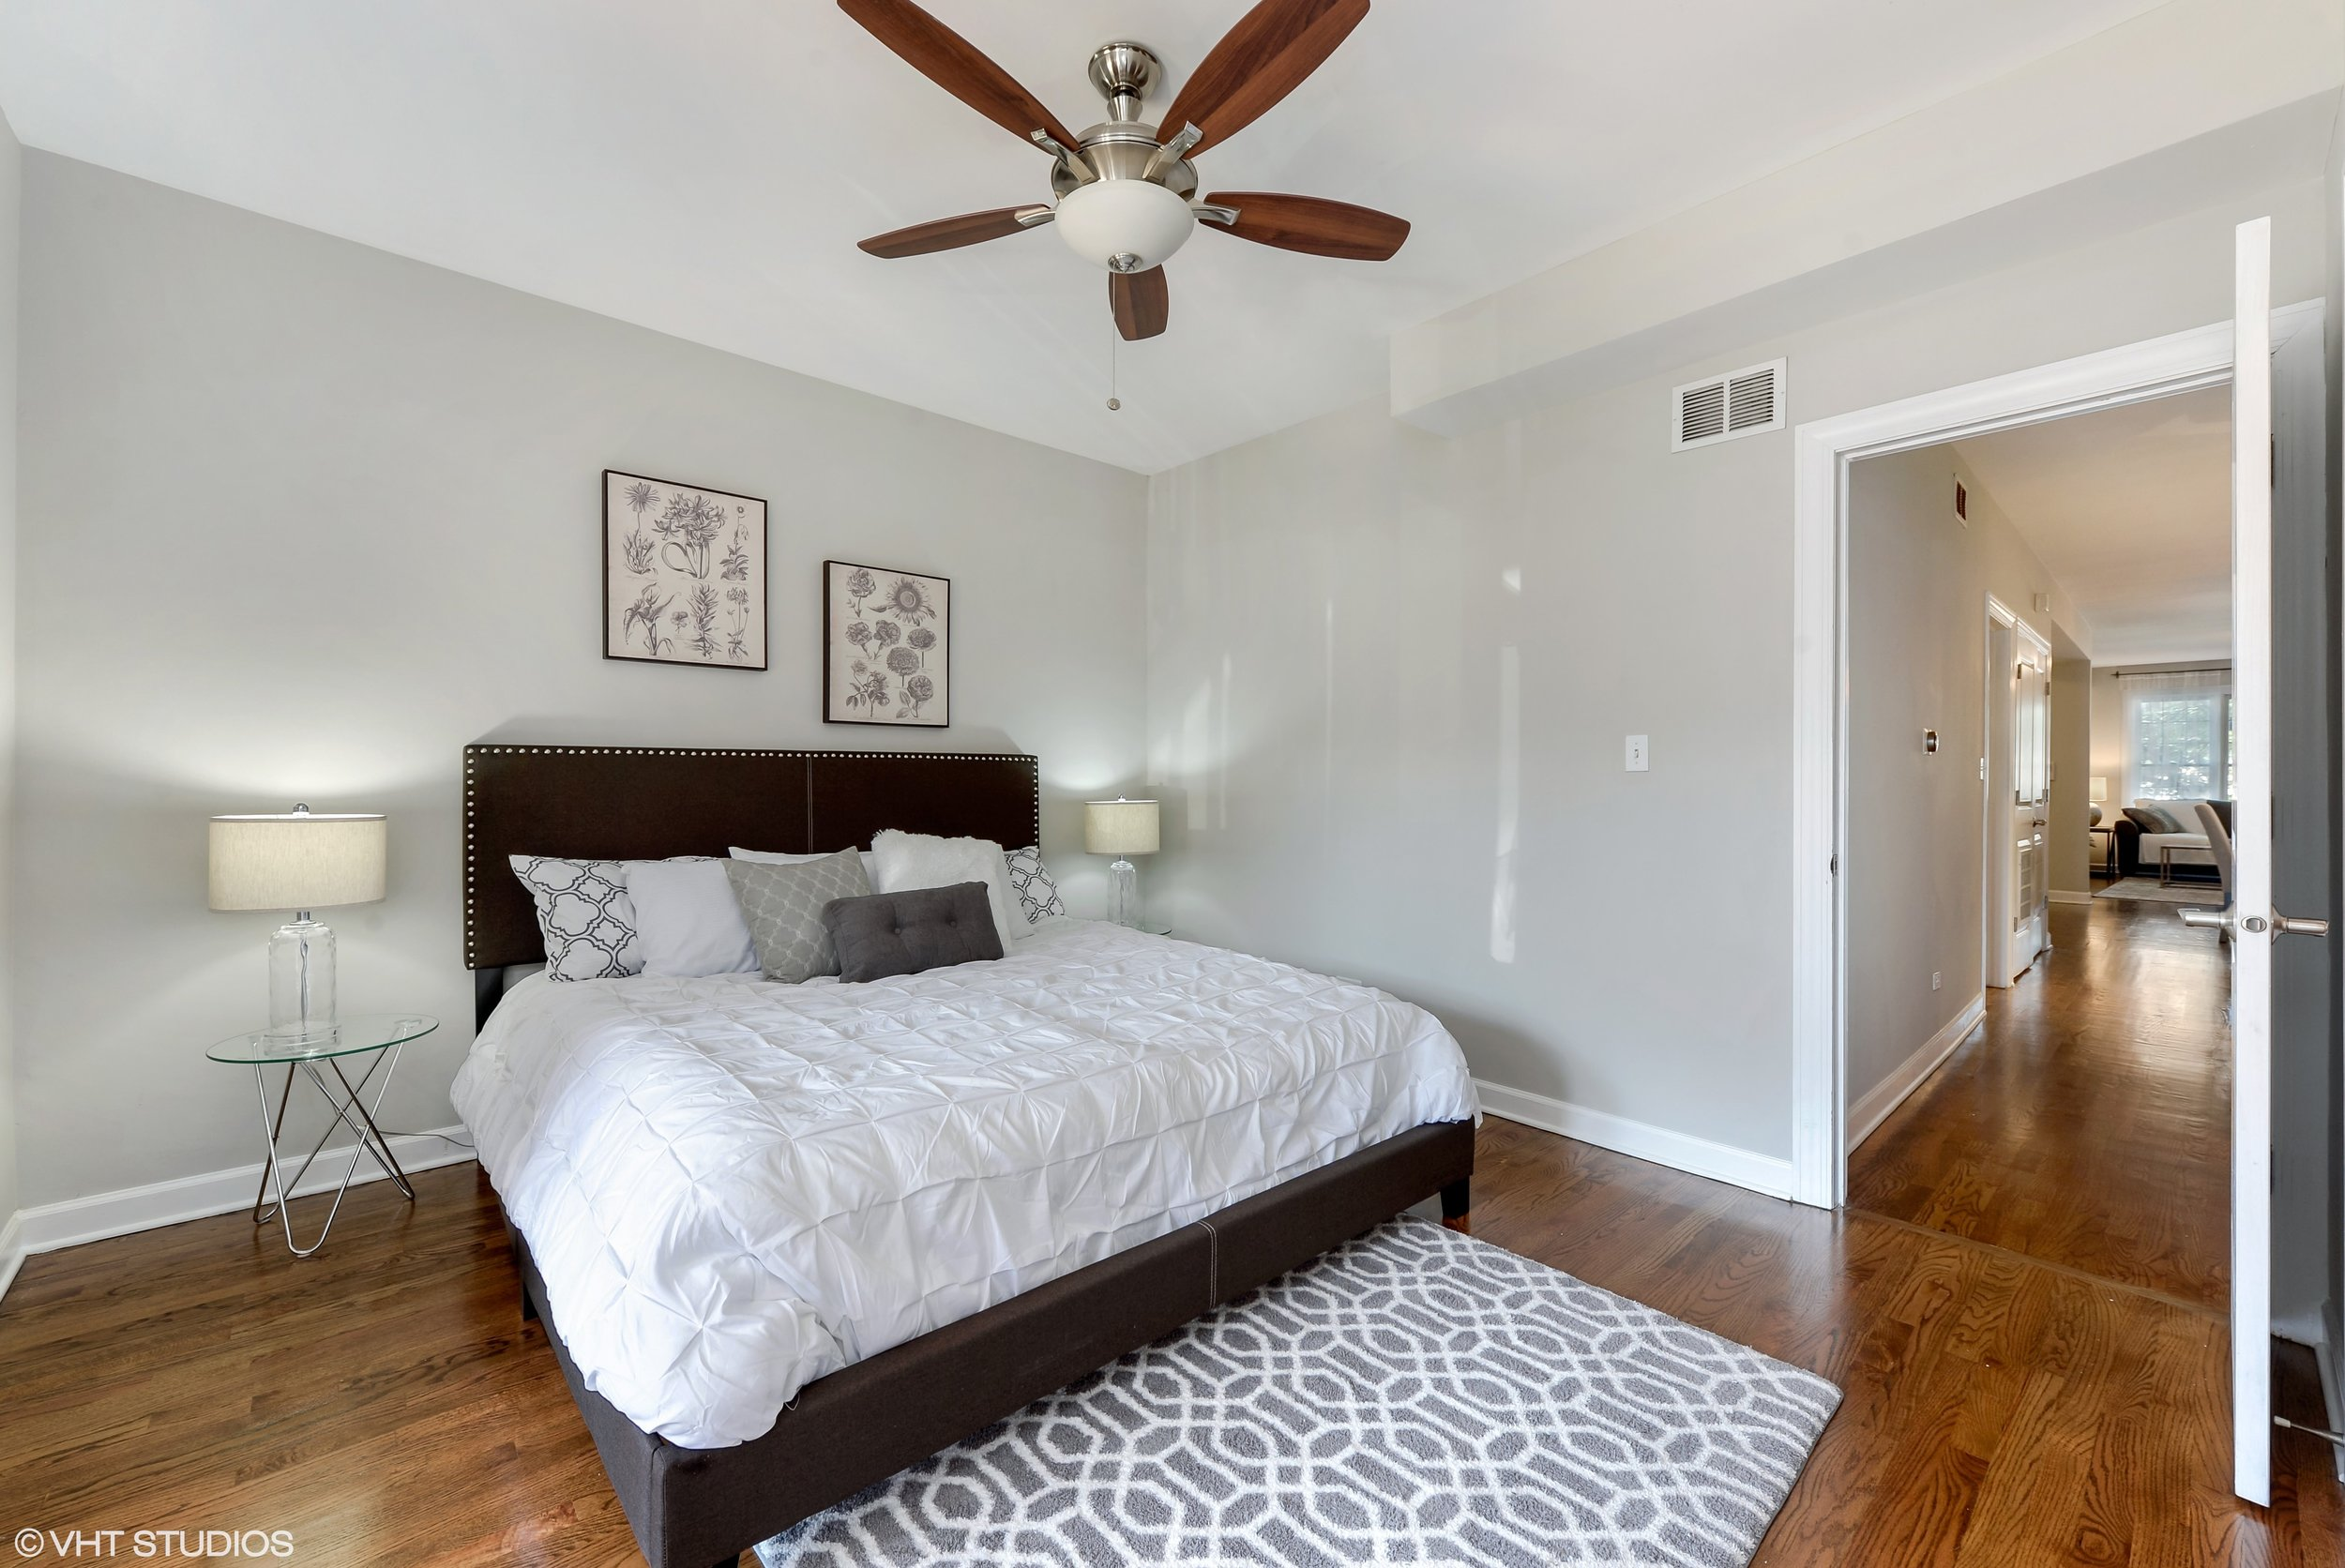 12_942NWoodStreet_Unit1_178_MasterBedroom_HiRes.jpg